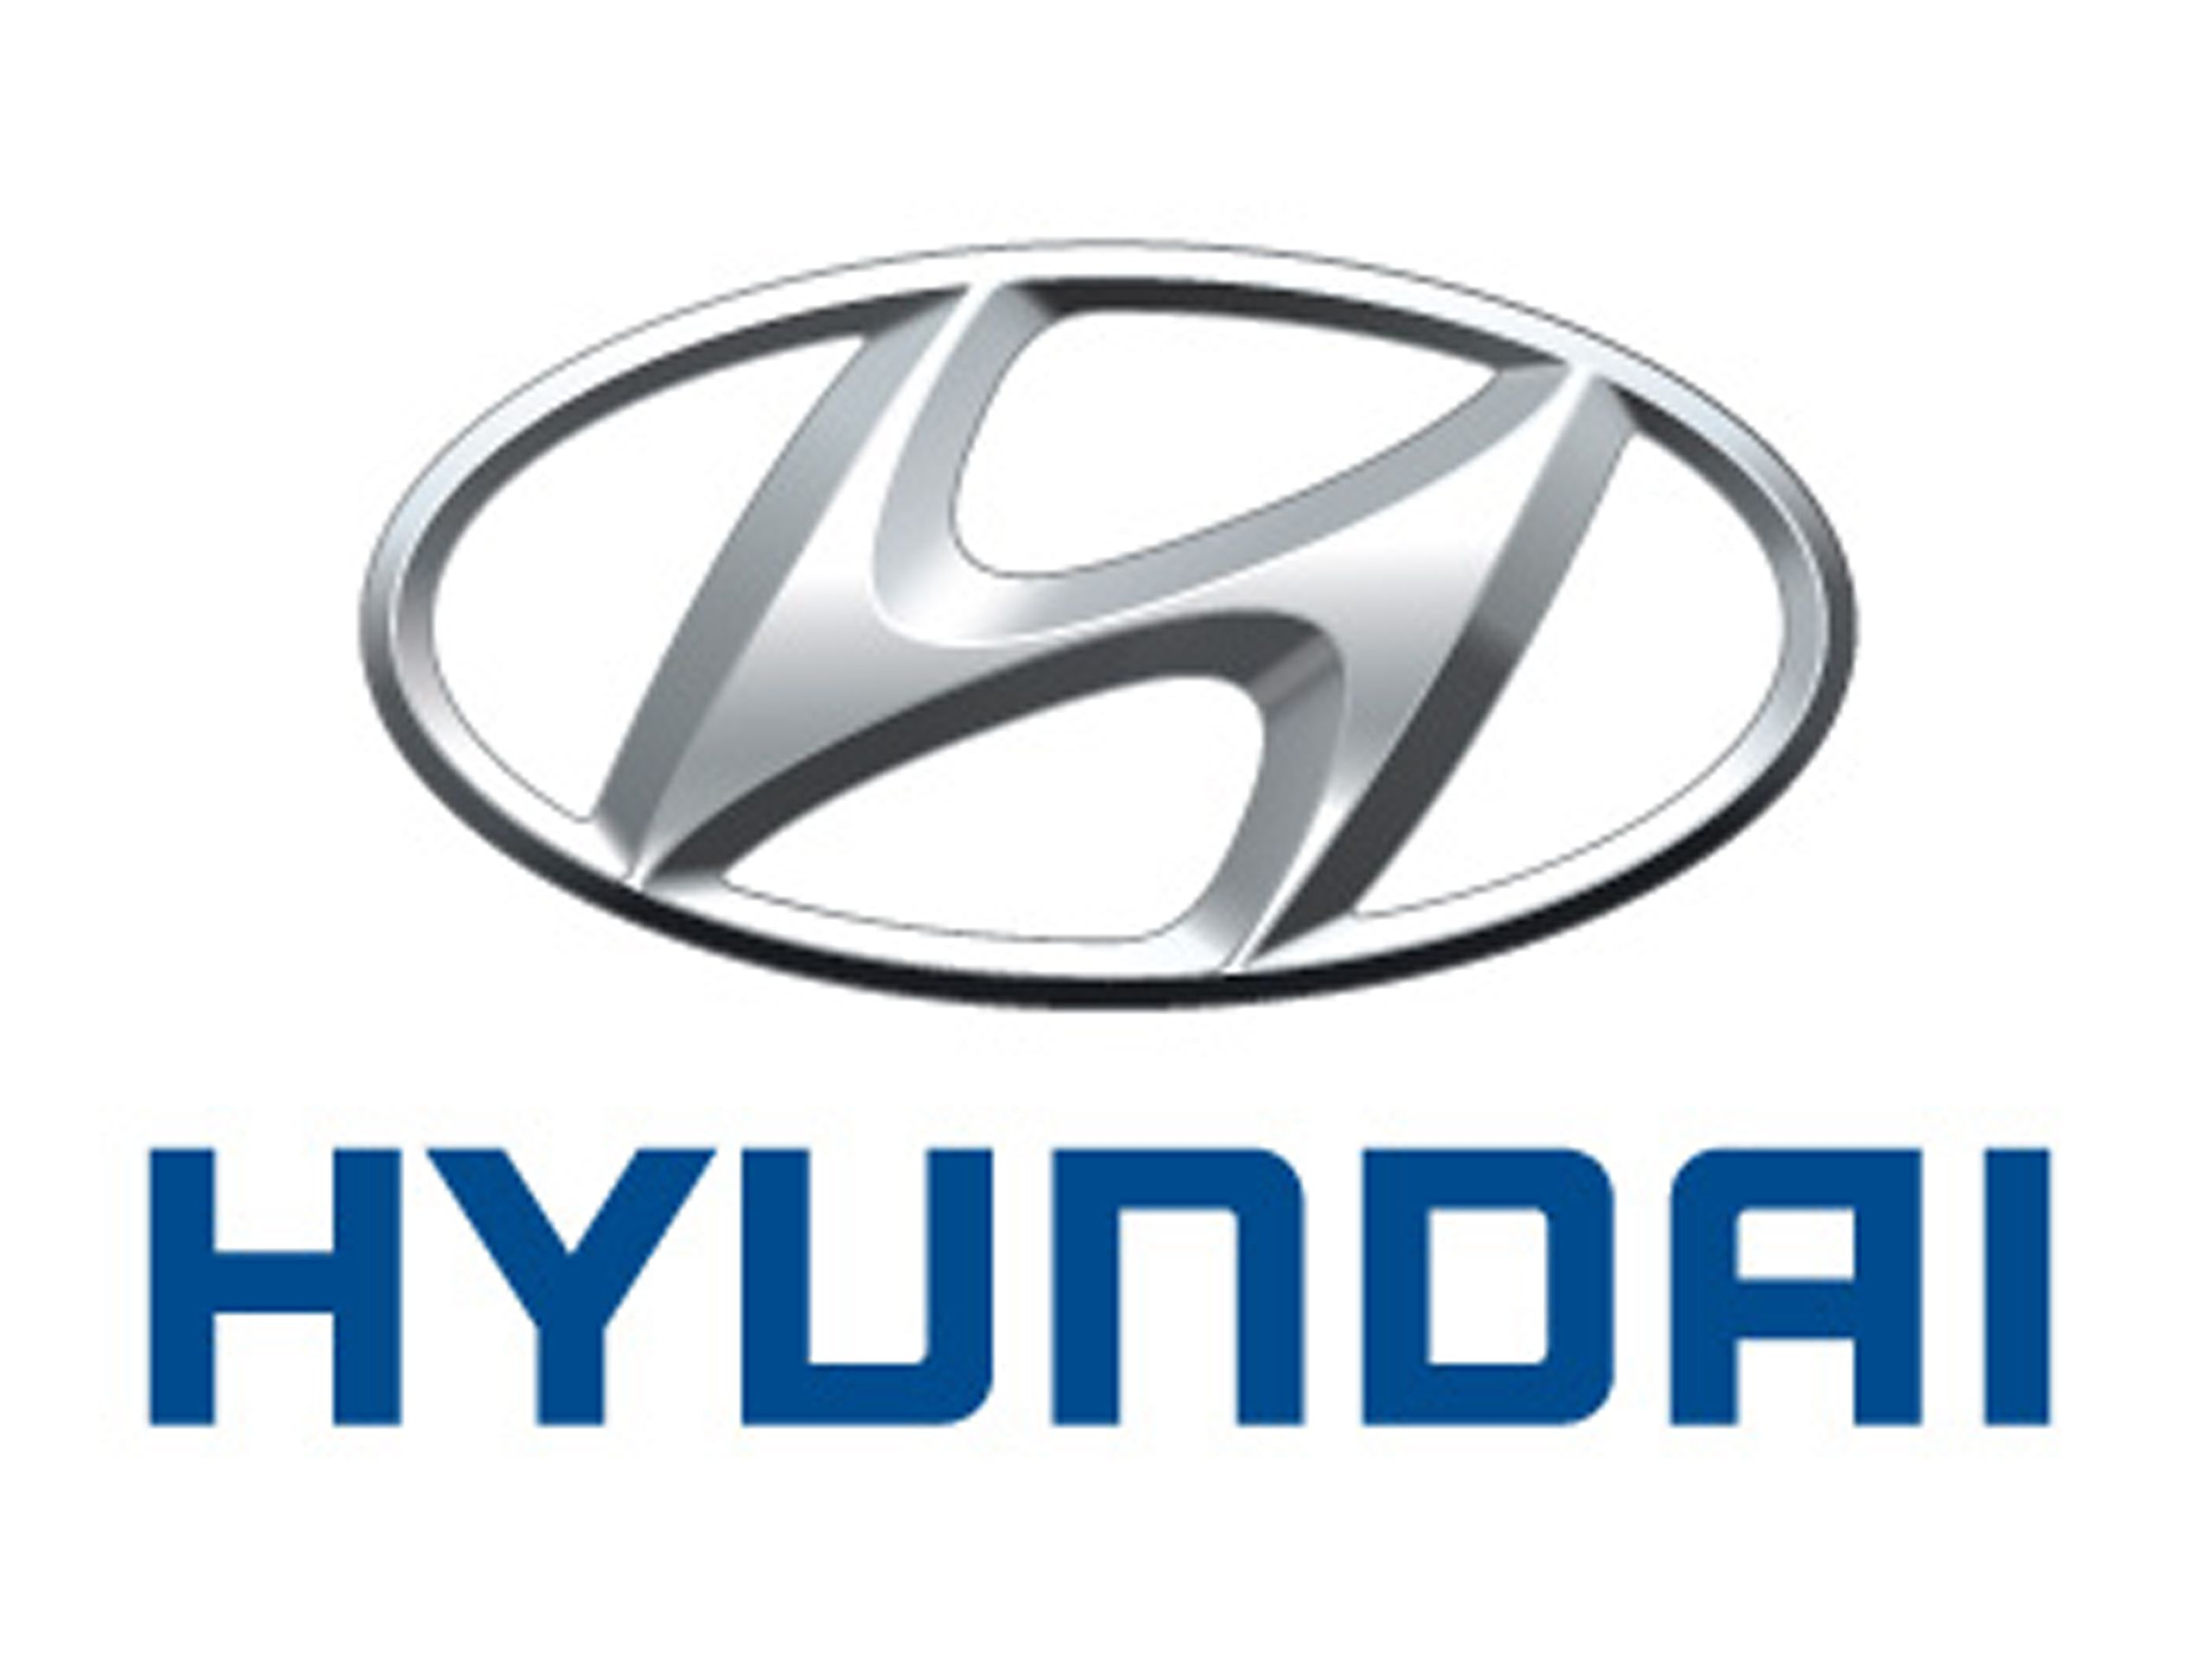 medium resolution of download workshop manuals for hyundai all model at great price from emanualonline com